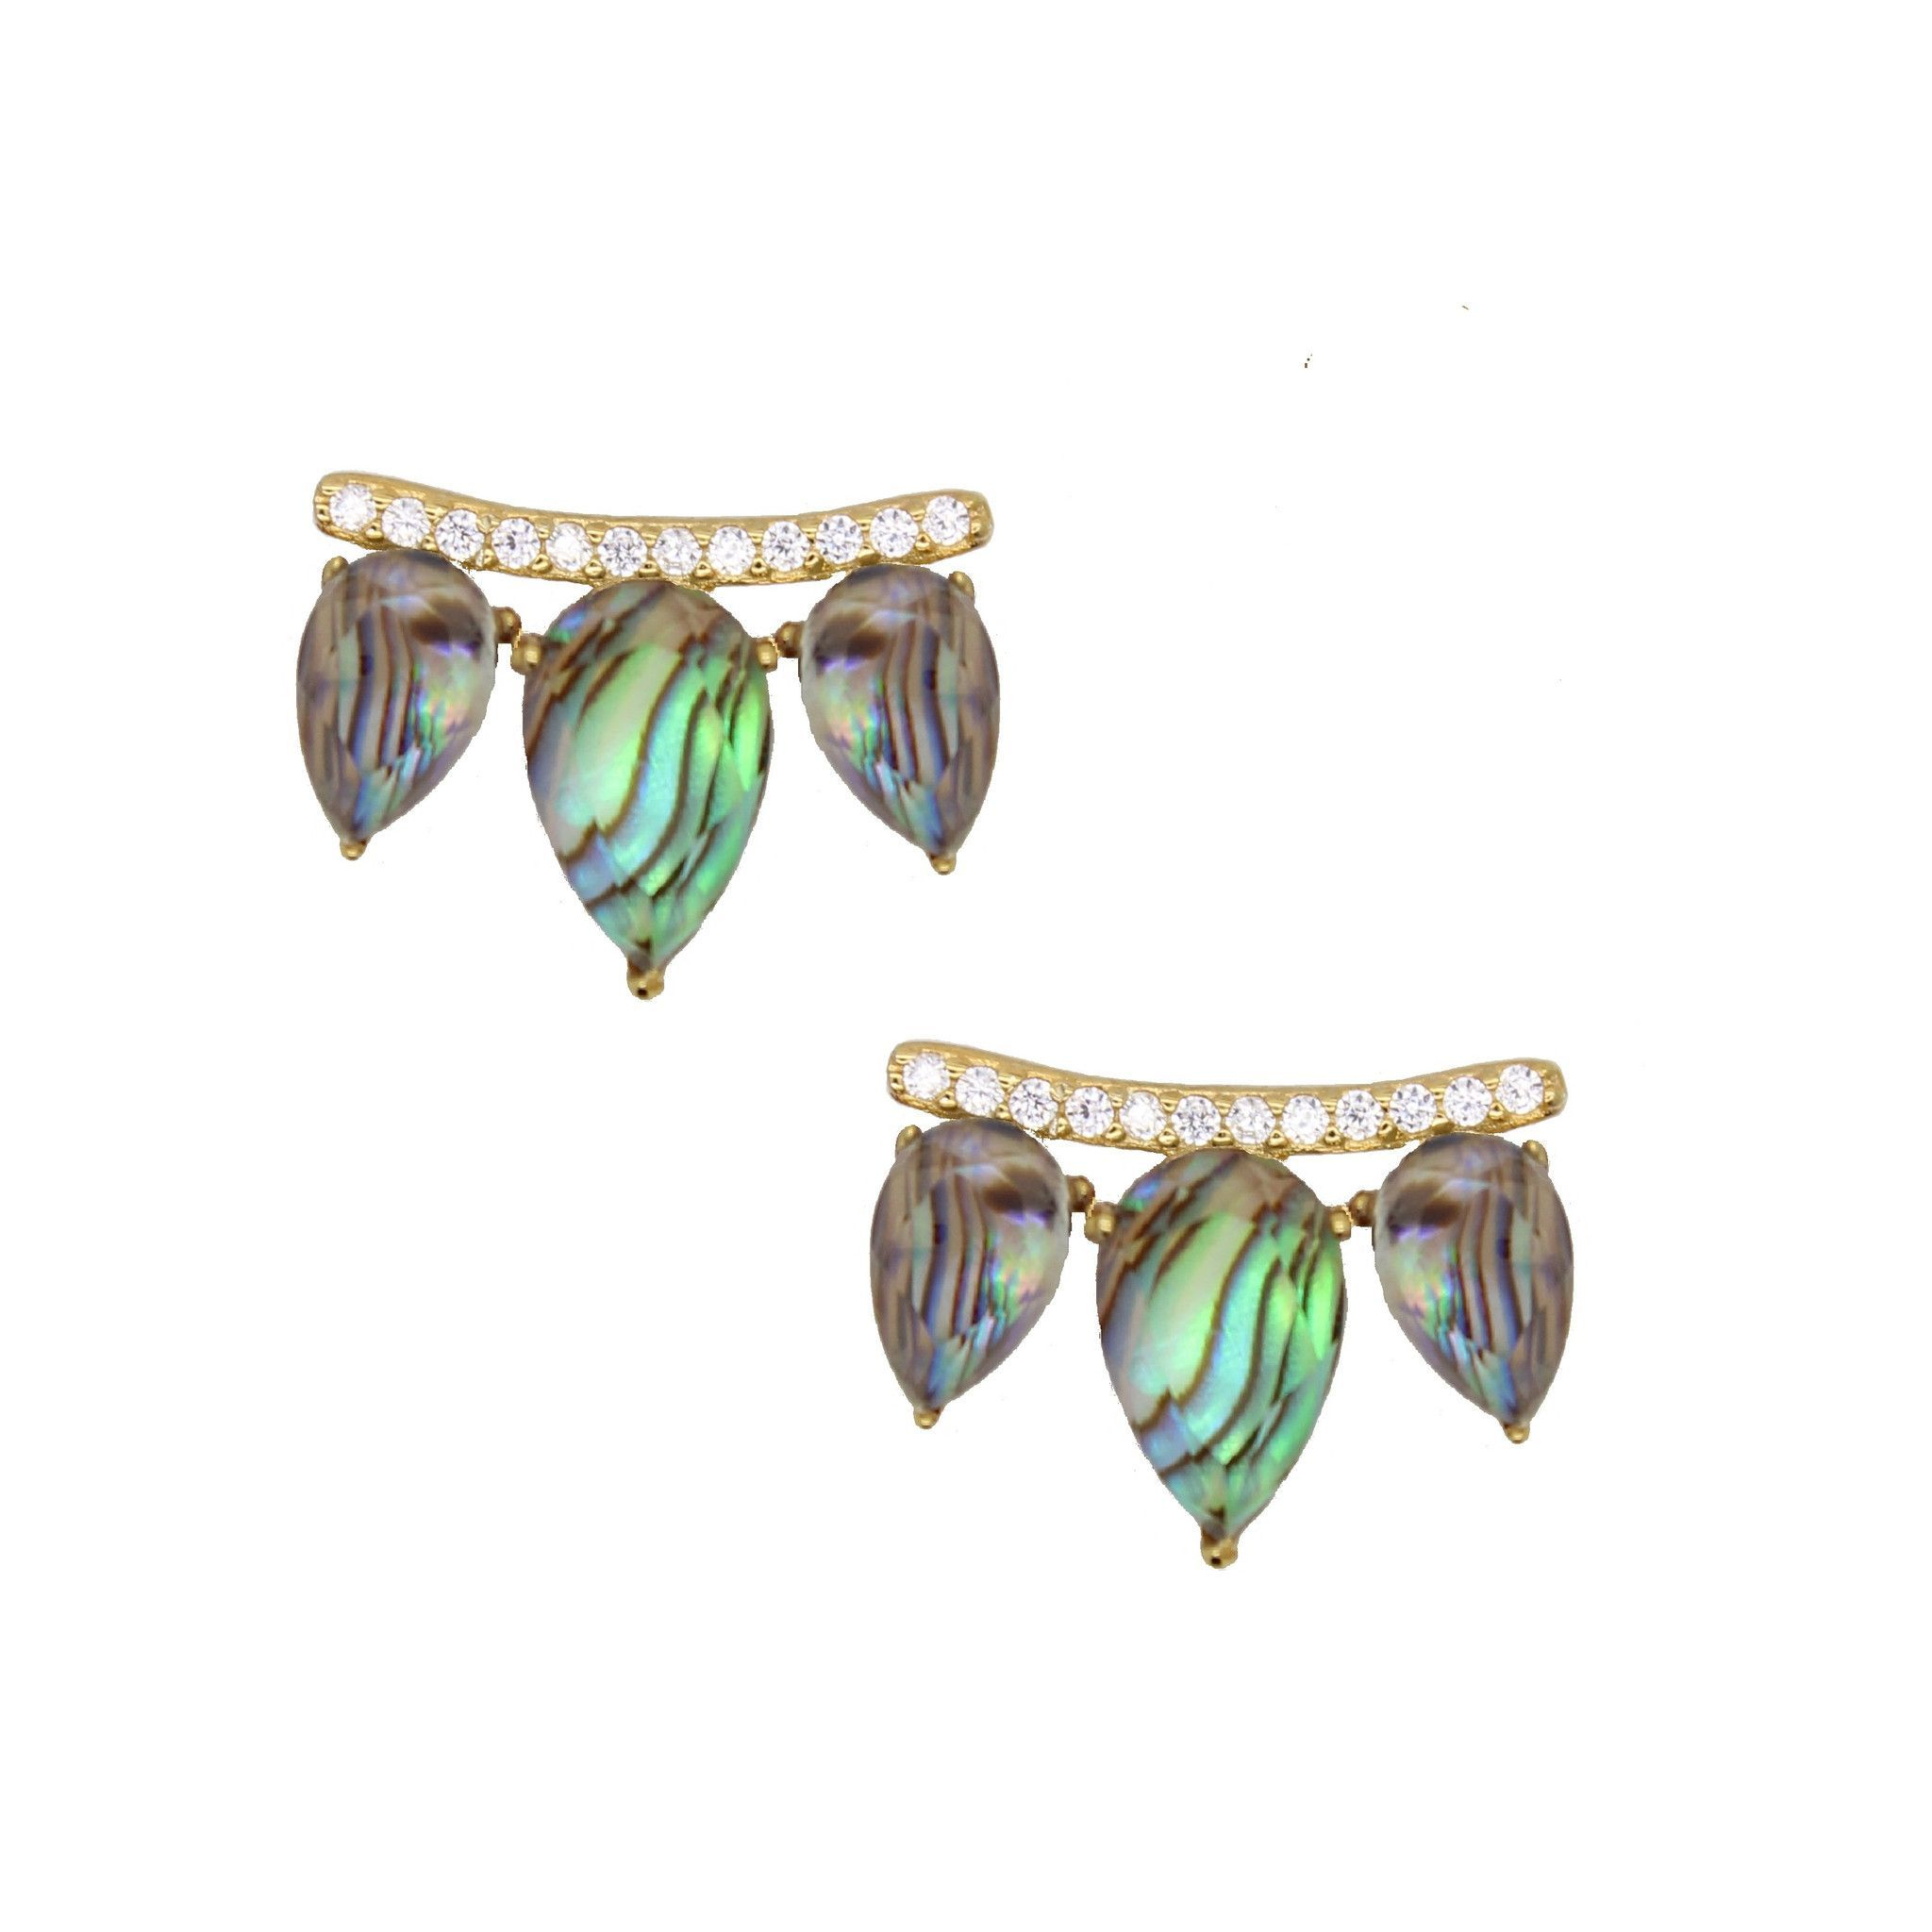 abalone silver ireland jewellery earrings plain semi shell stud precious hanging